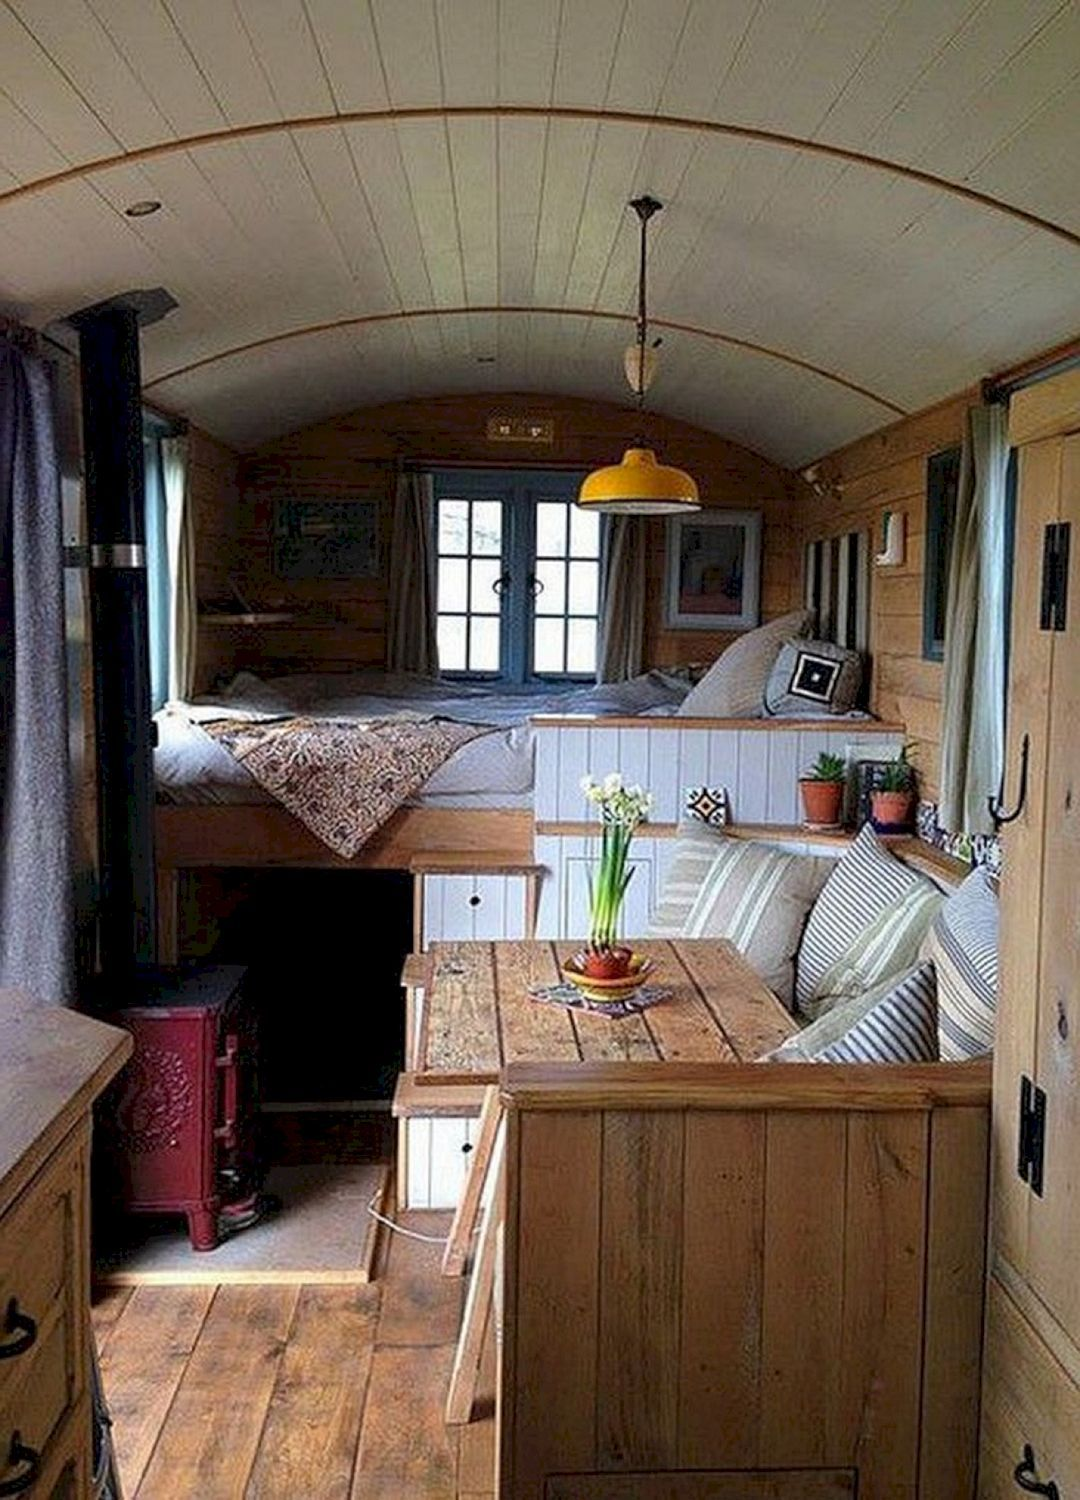 Top 5 Rv Campers Interior Remodel Hacks Ideas Freshouz